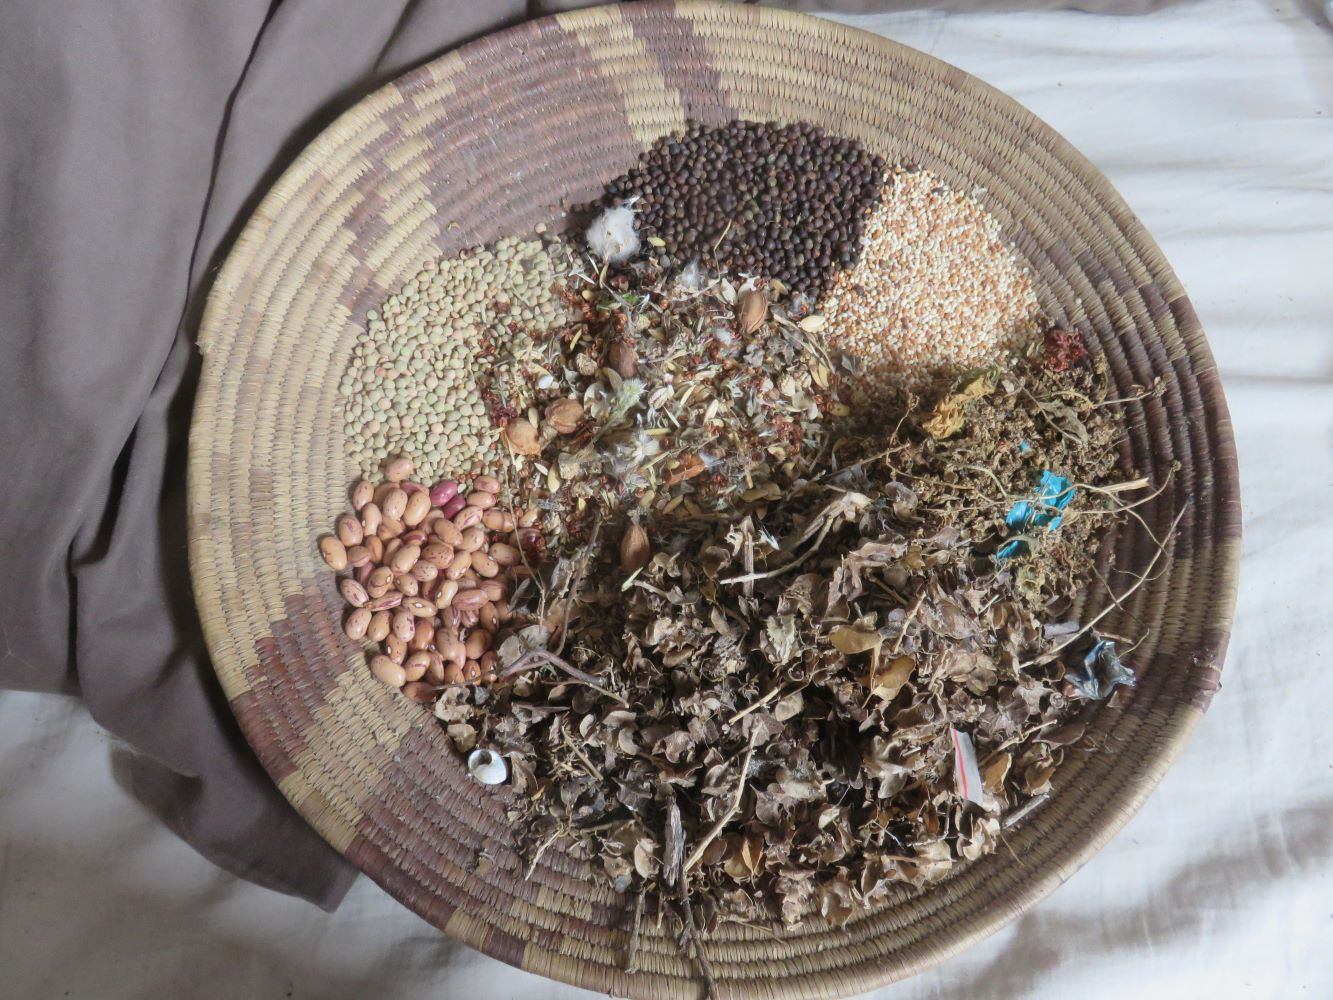 The forty species seed mix is taken from the grocery cupboard, cheap bird seed mixes, garden weeds and native plants growing in the wild. C4 grasses, chenopods and legumes form the backbone.